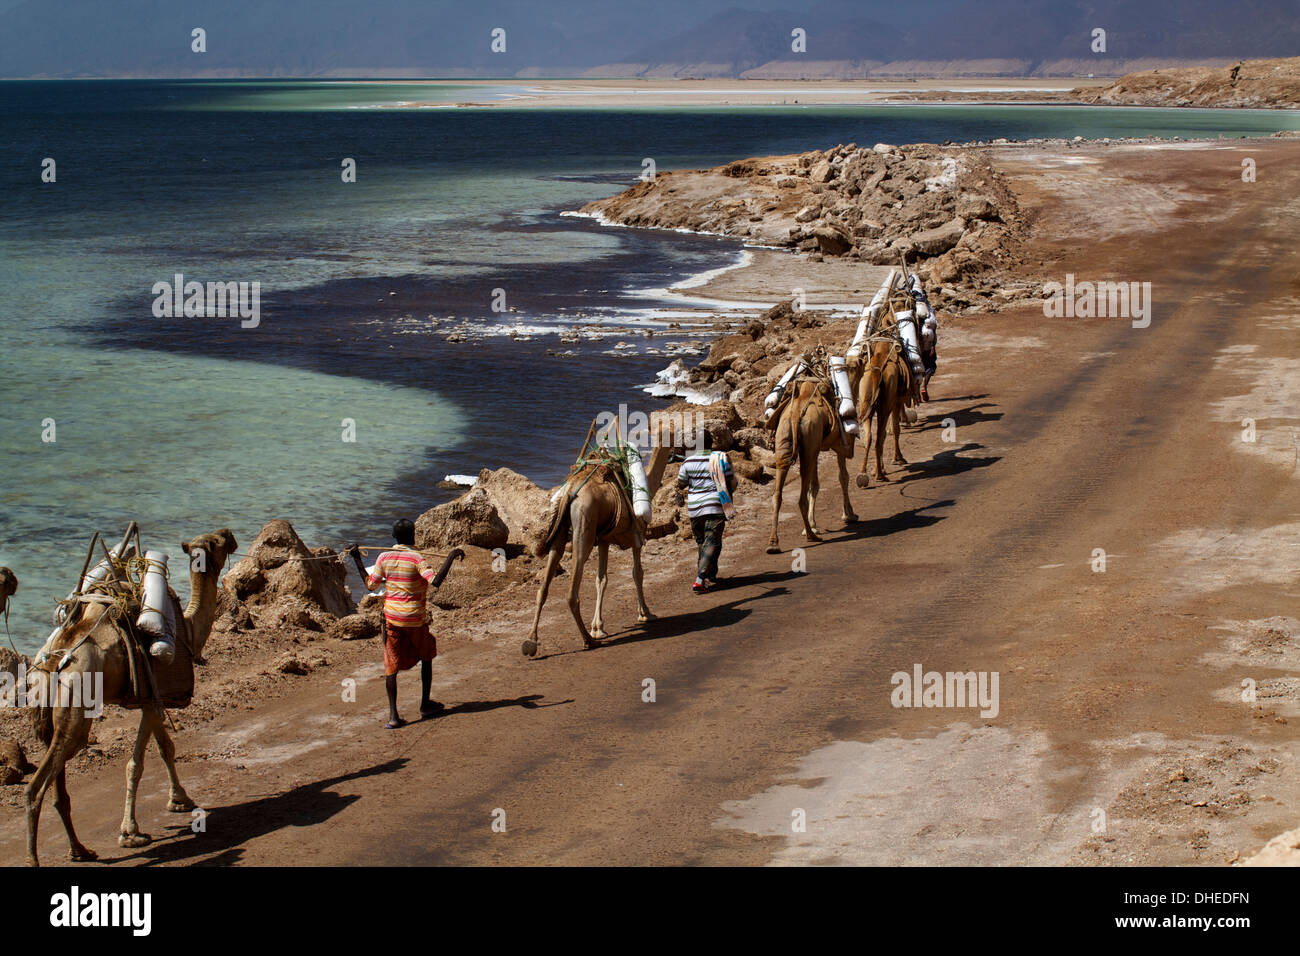 Salt caravan in Djibouti, going from Assal Lake to Ethiopian mountains, Djibouti, Africa Stock Photo